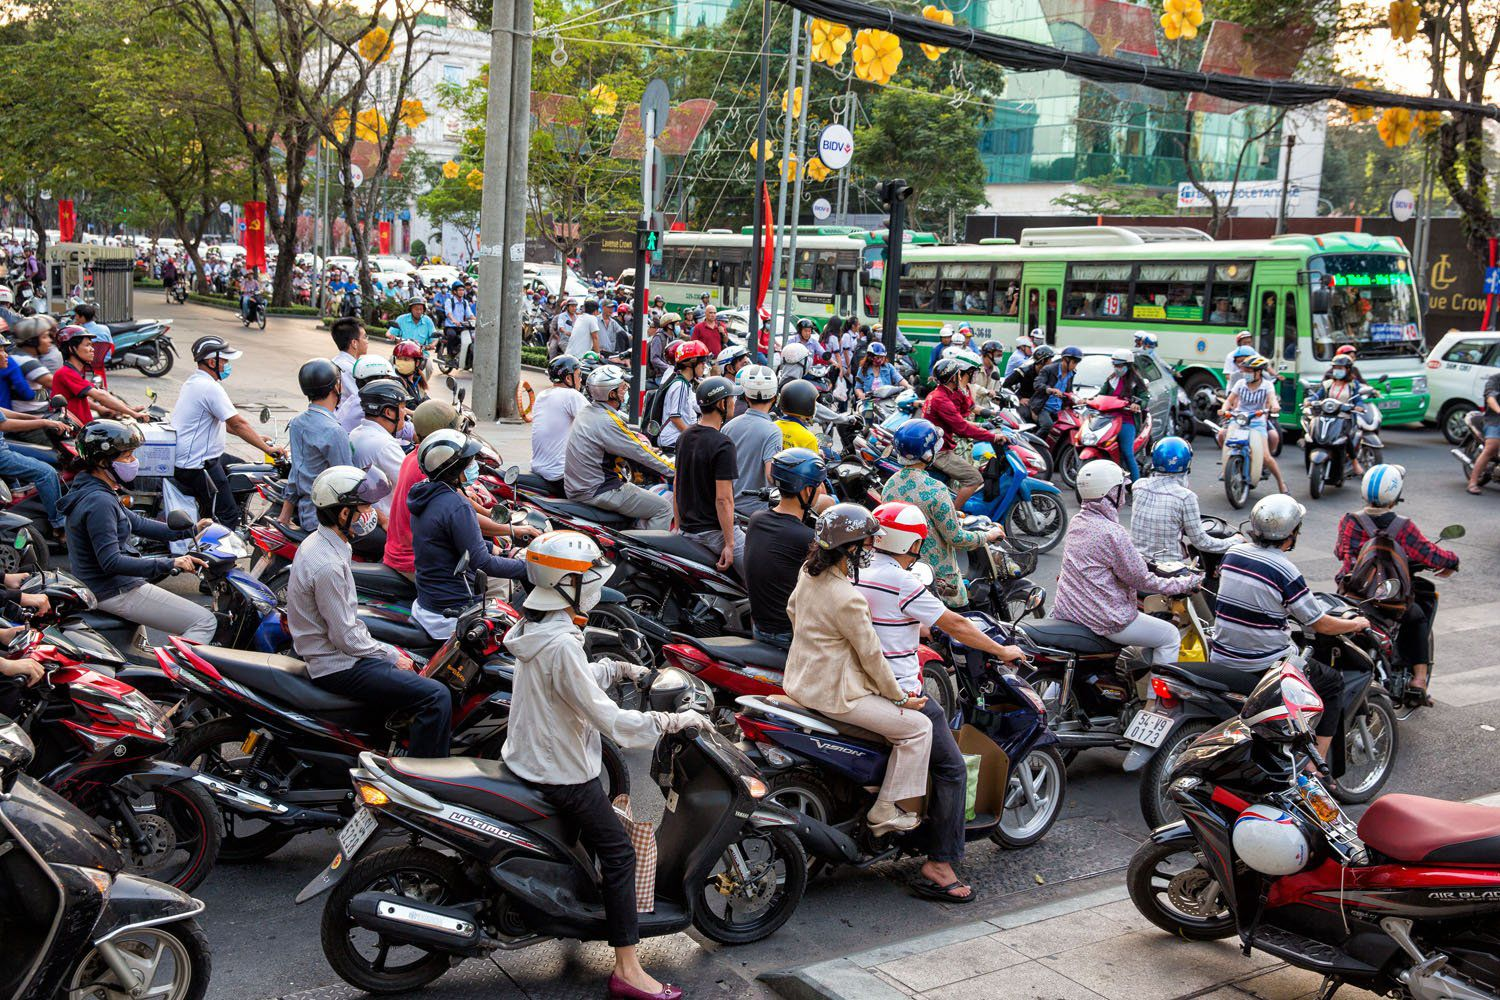 Sea of Motorbikes in HCMC